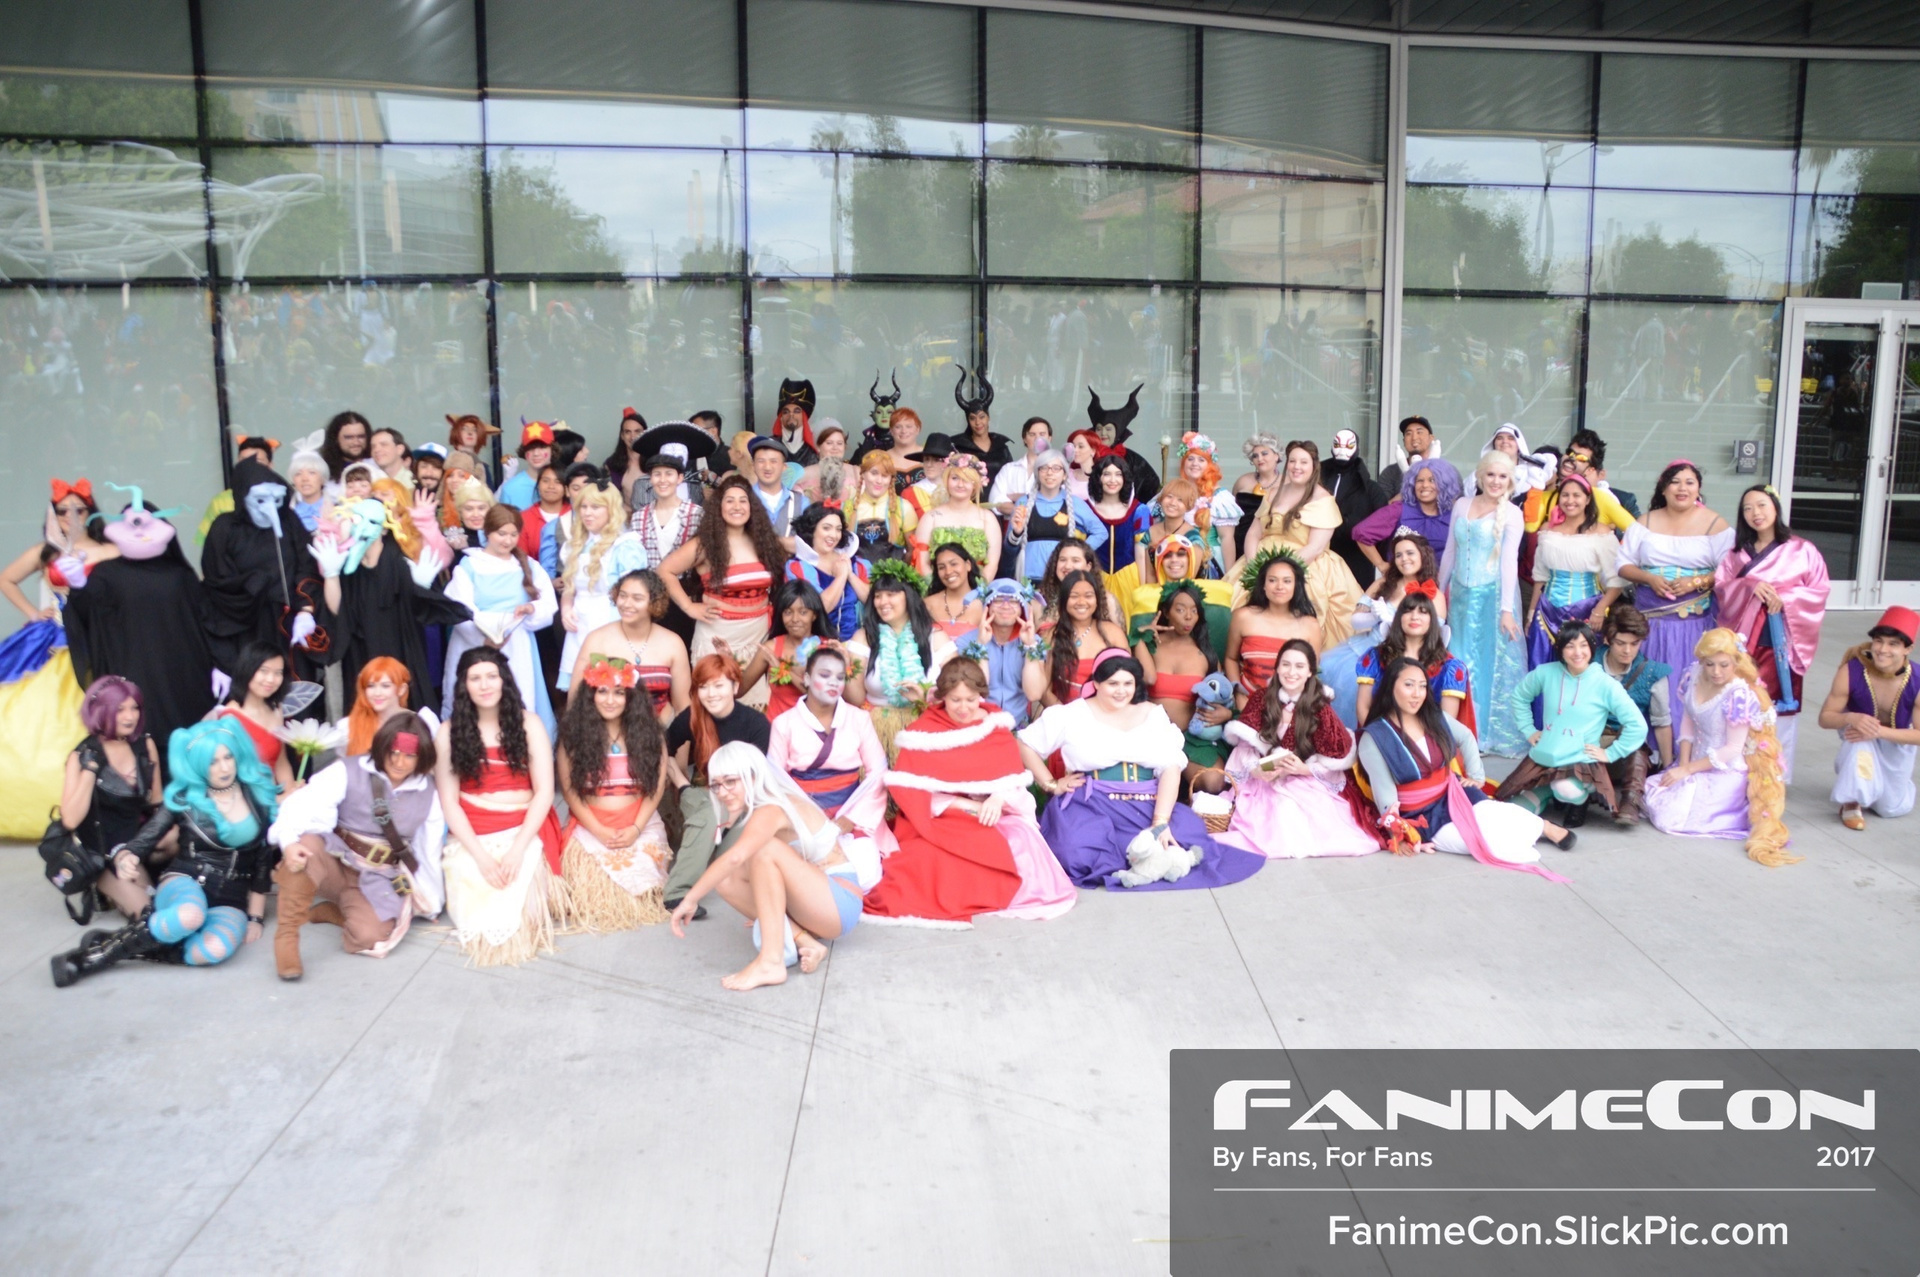 FanimeCon's Gallery